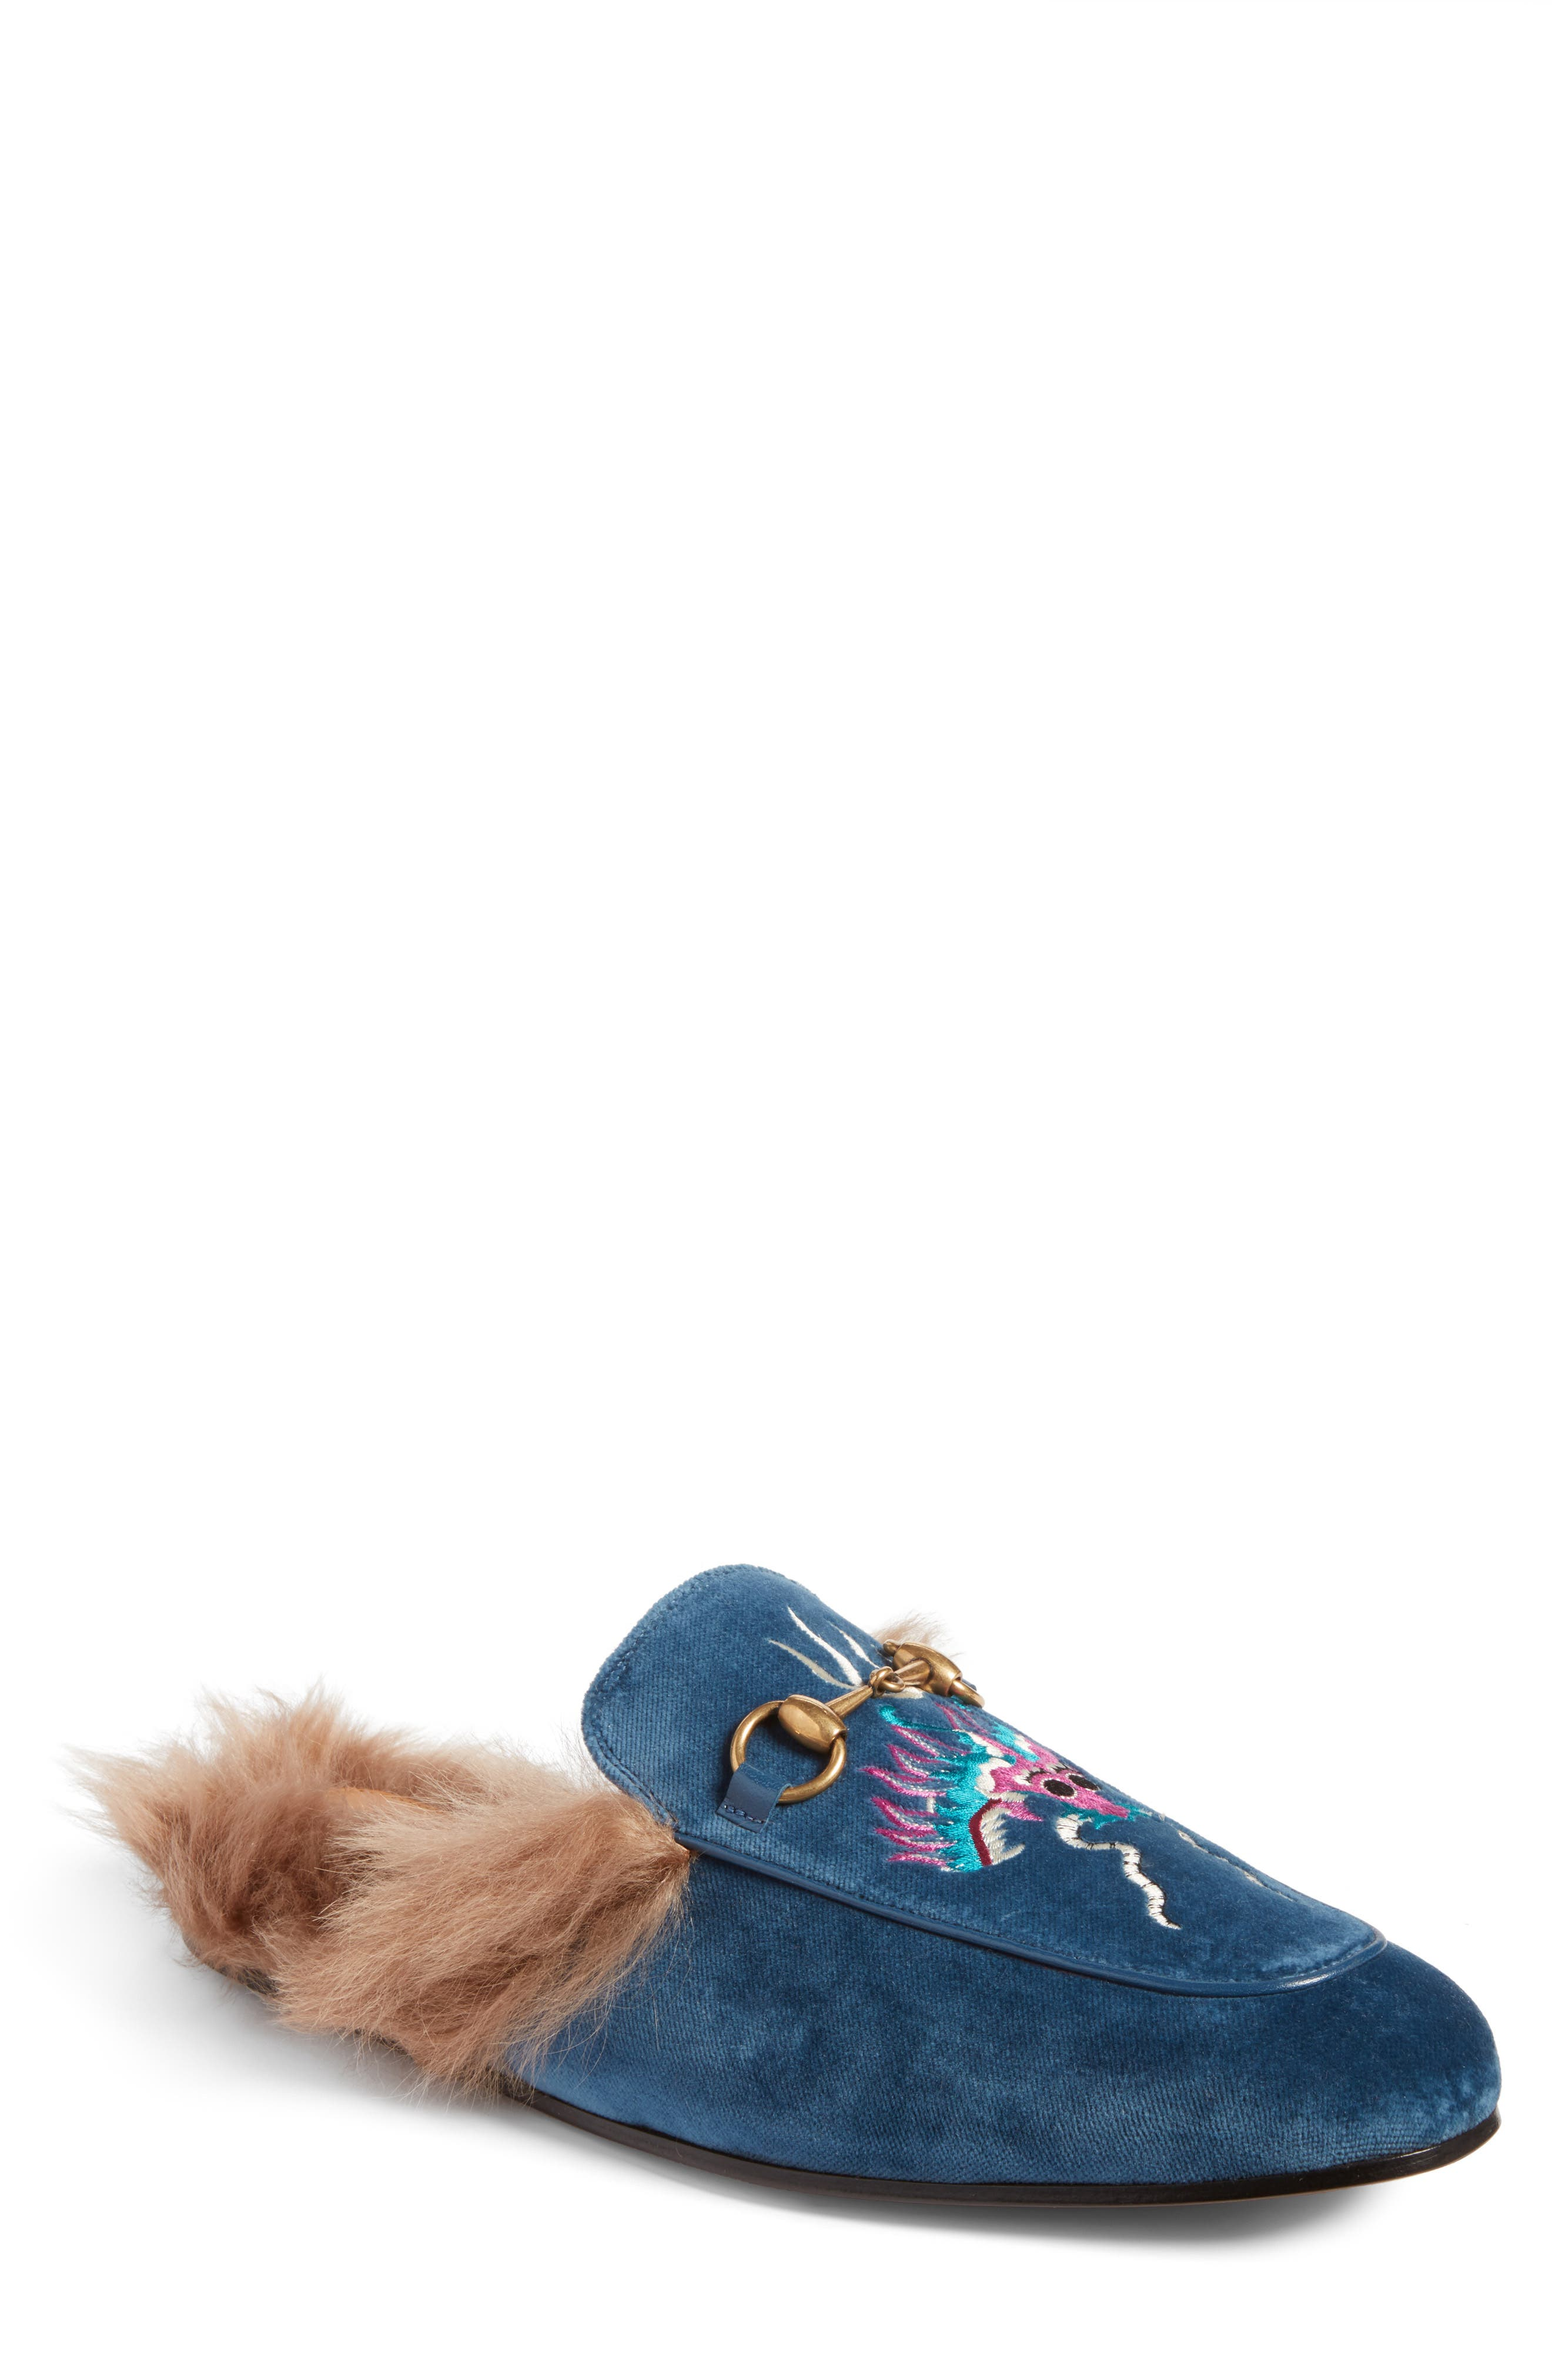 Princetown Genuine Shearling Lined Mule Loafer,                             Main thumbnail 1, color,                             Cobalt Multi